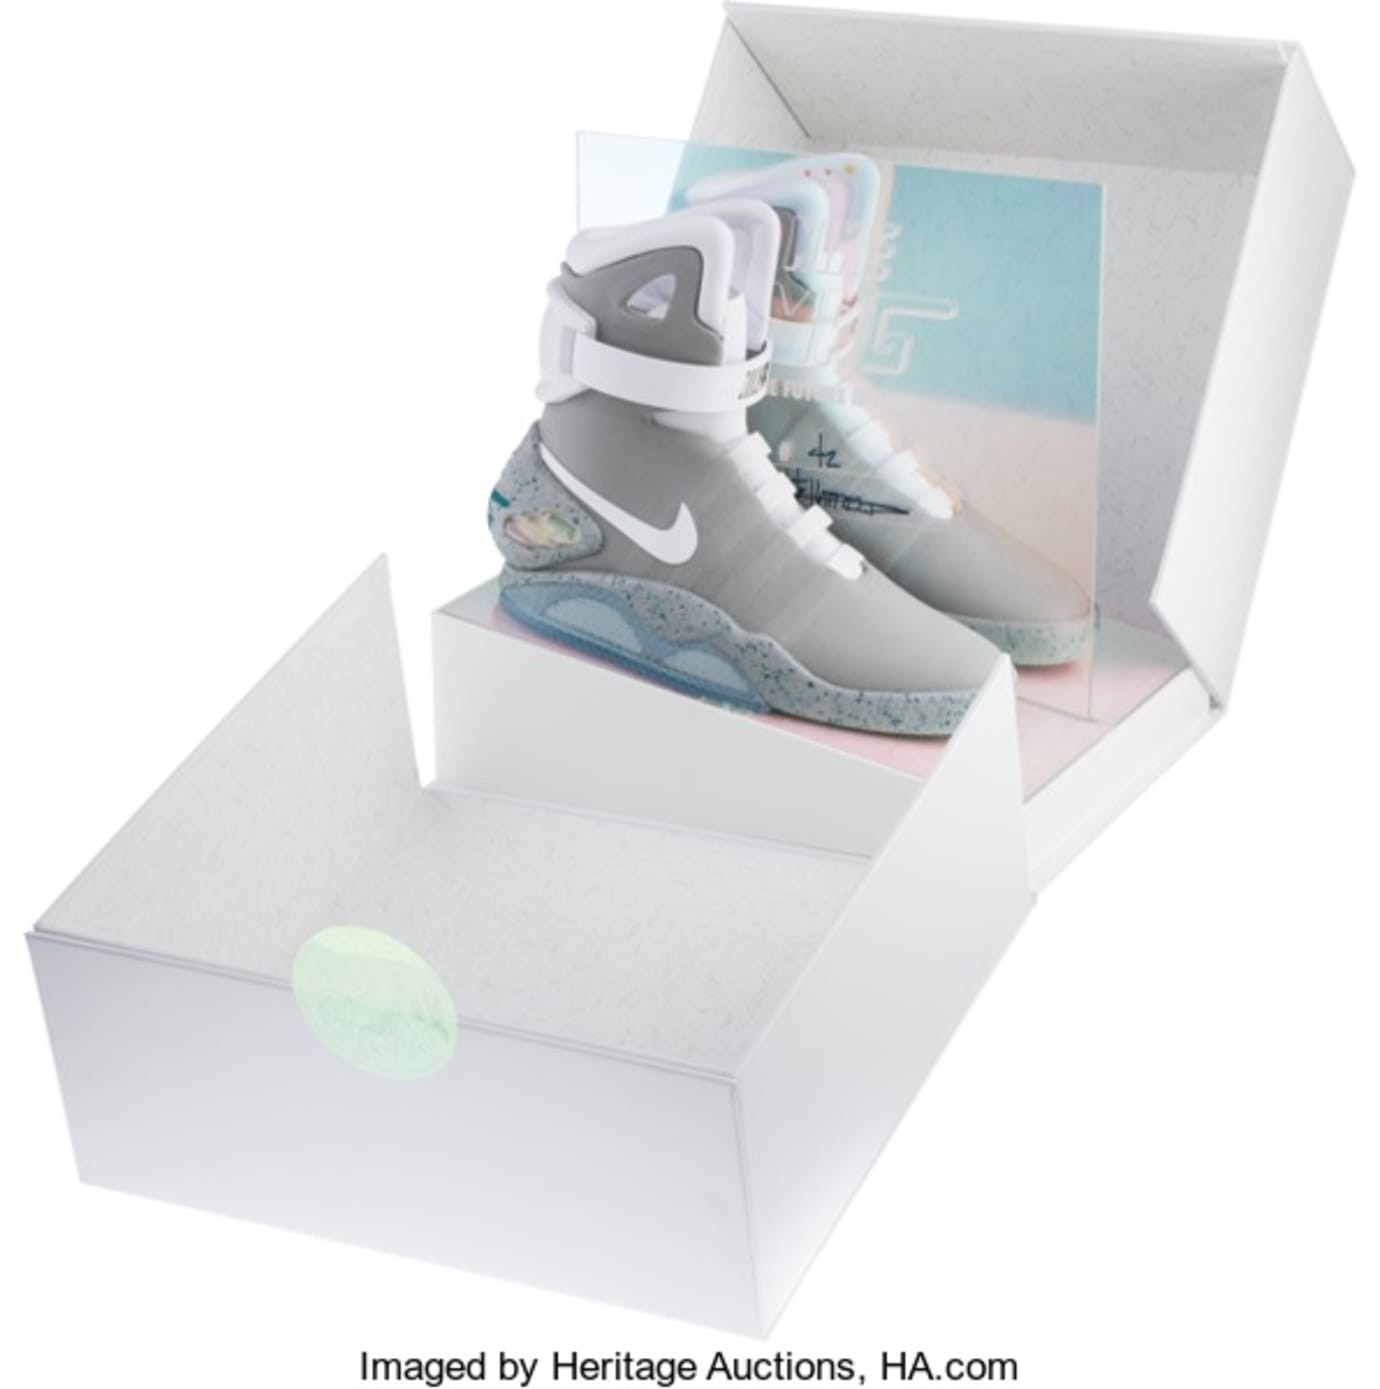 quality design 54d6a 15a90 Nike Air Mag Heritage Auctions